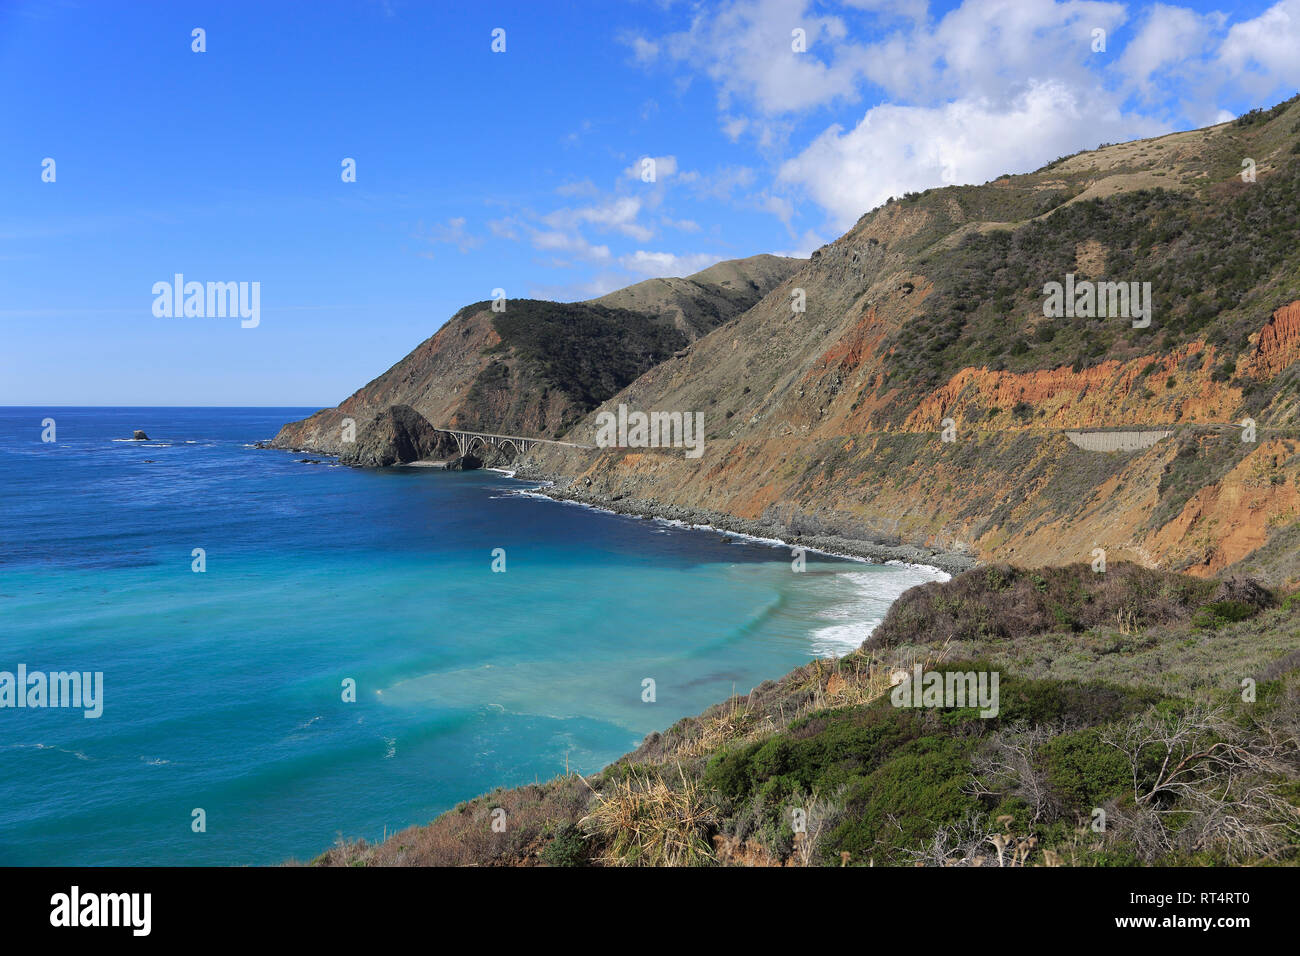 California Pch 1 Stock Photos & California Pch 1 Stock Images - Page